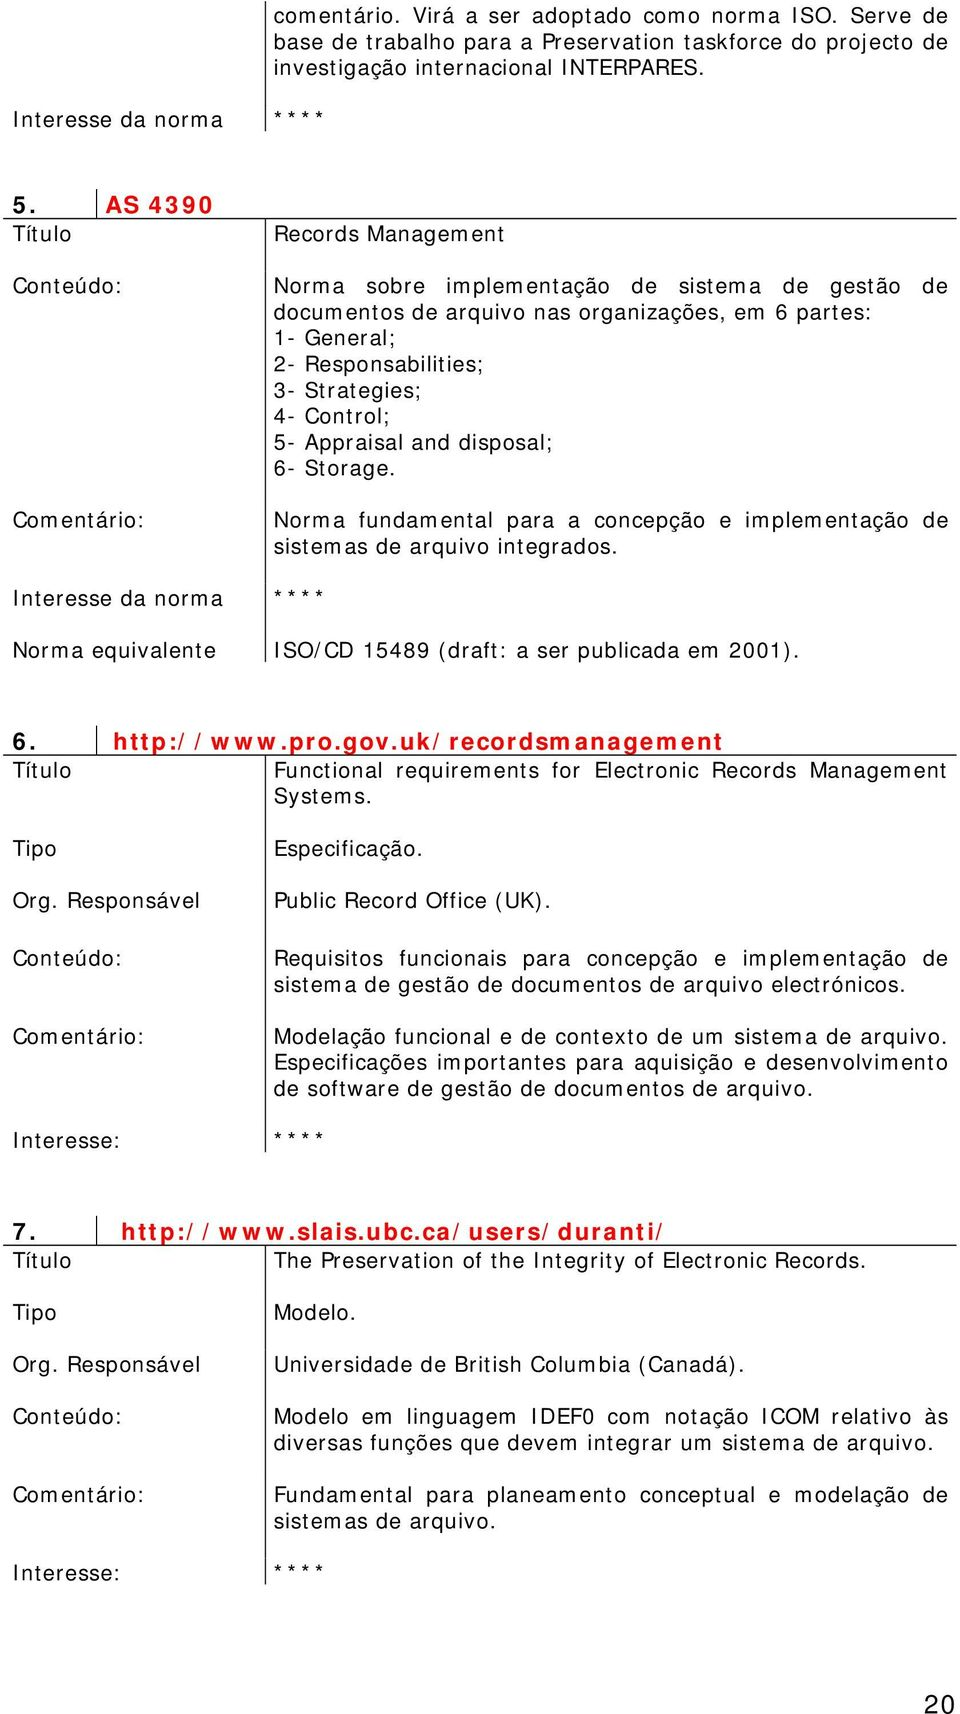 Appraisal and disposal; 6- Storage. Norma fundamental para a concepção e implementação de sistemas de arquivo integrados. ** Norma equivalente ISO/CD 15489 (draft: a ser publicada em 2001). 6. http://www.